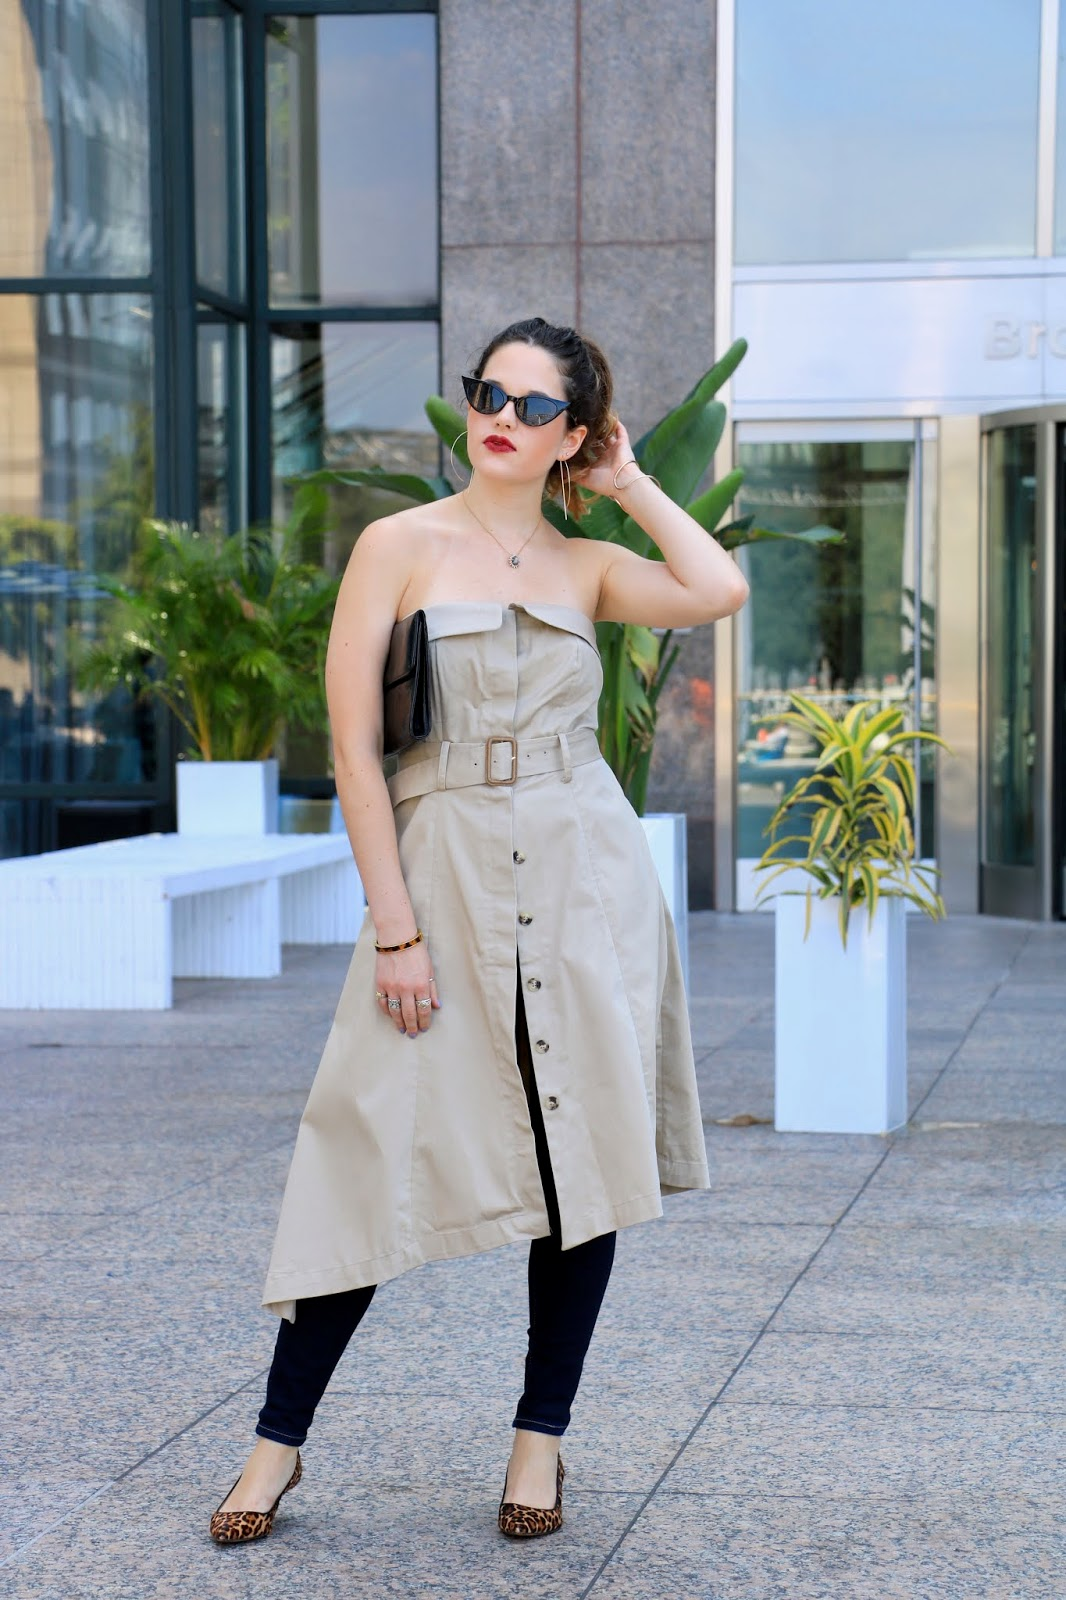 Nyc fashion blogger Kathleen Harper showing how to wear pants with a dress